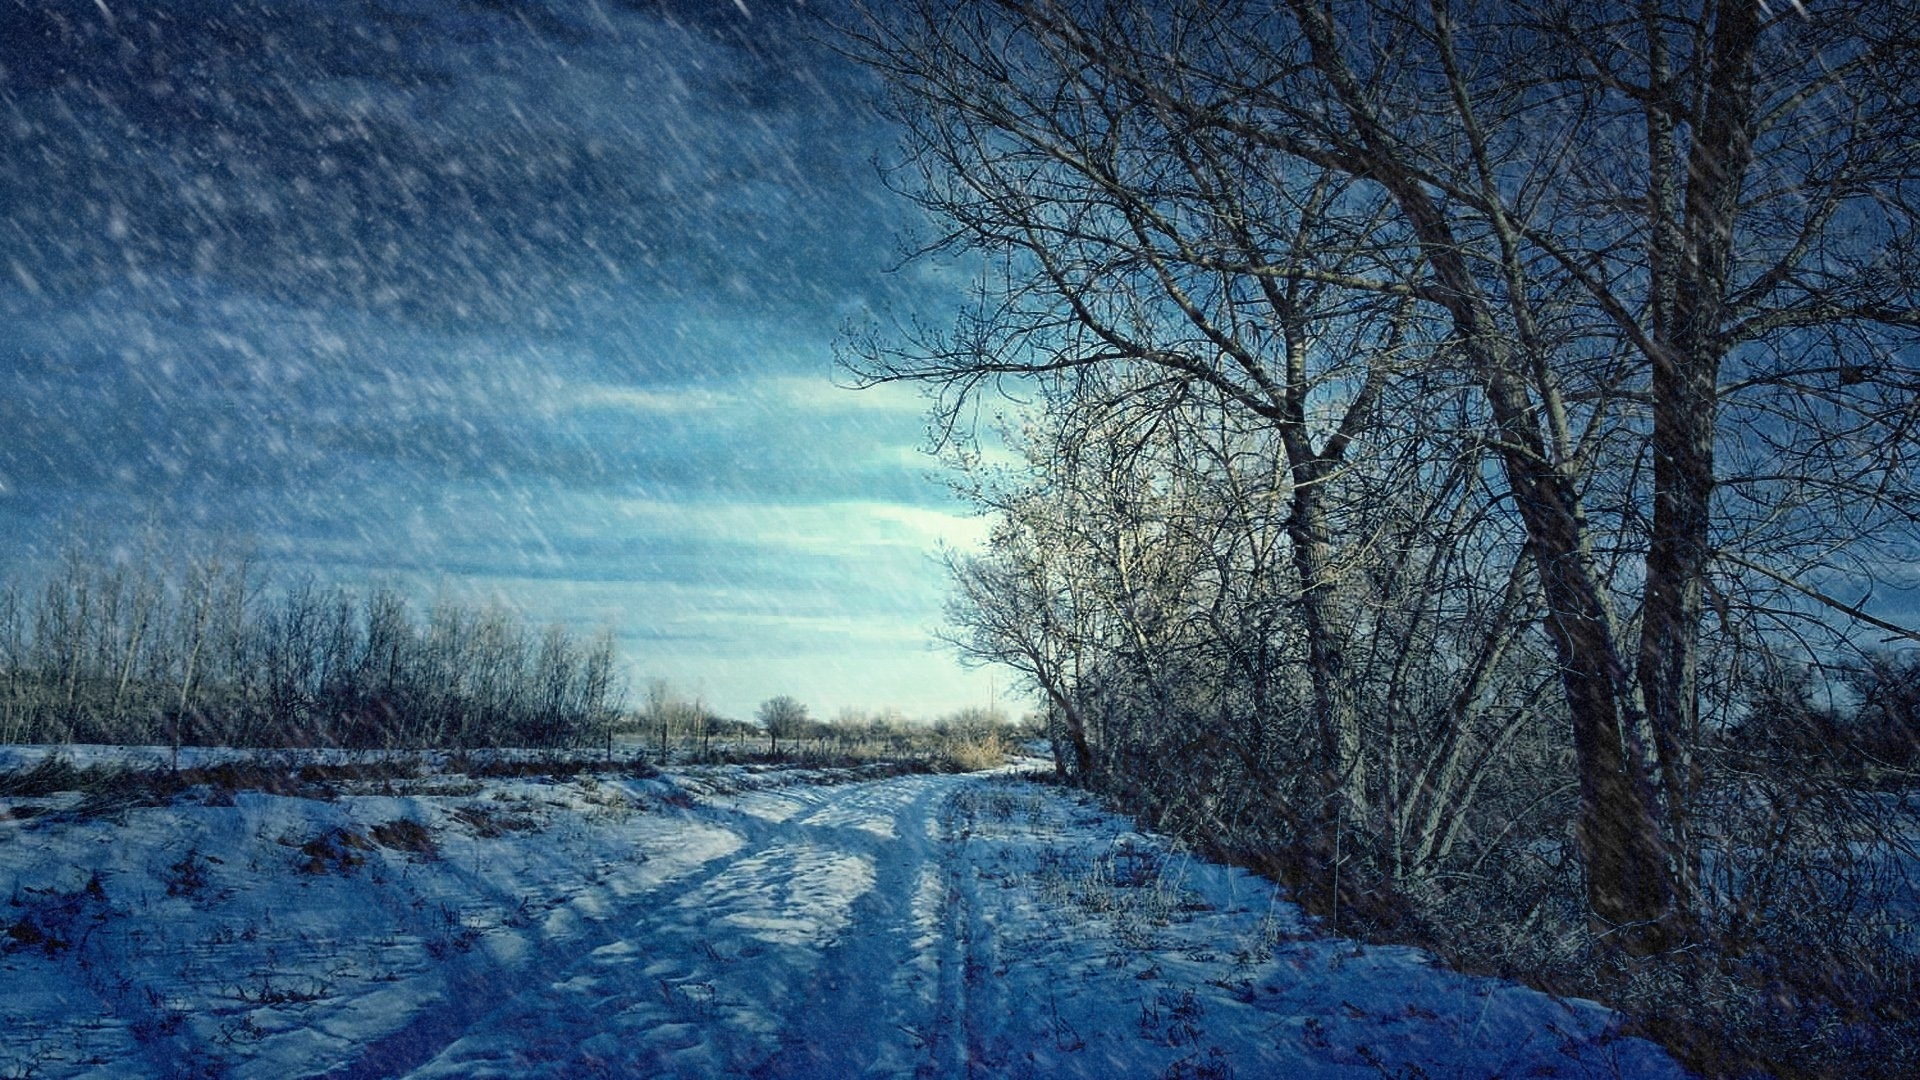 winter scenes screensavers free - walldevil